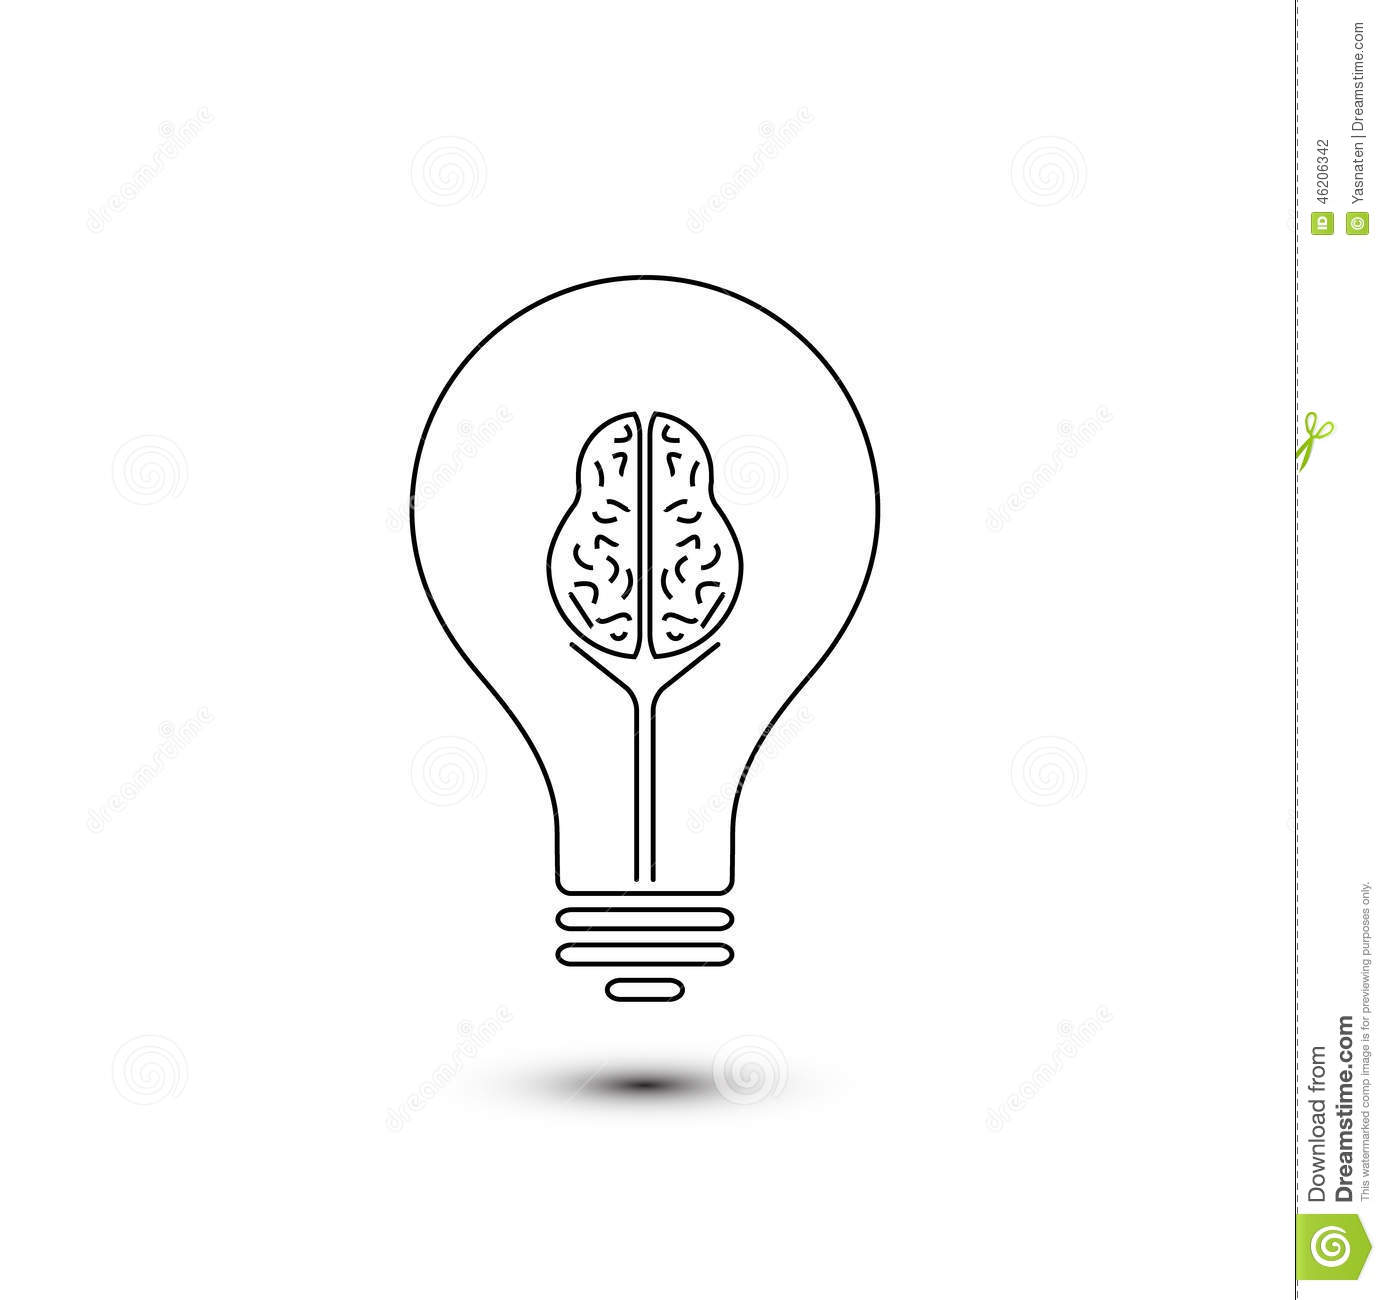 electrical technology with Stock Illustration Abstract Outline Brain Light Bulb Technology Icon Image46206342 on Stock Illustration Abstract Outline Brain Light Bulb Technology Icon Image46206342 further Stock Illustration Sketch Light Bulb Icon Style Idea Concept Theme Hand Drawn Image Image58730510 together with Rice Cooker Vector 6041791 in addition Royalty Free Stock Photo Businesswoman Female Ceo Stick Figure Pictogram Ic Set Human Representing Concept Strong As Her Workplace Image40163925 besides Star Delta Three Phase Motor Starter.